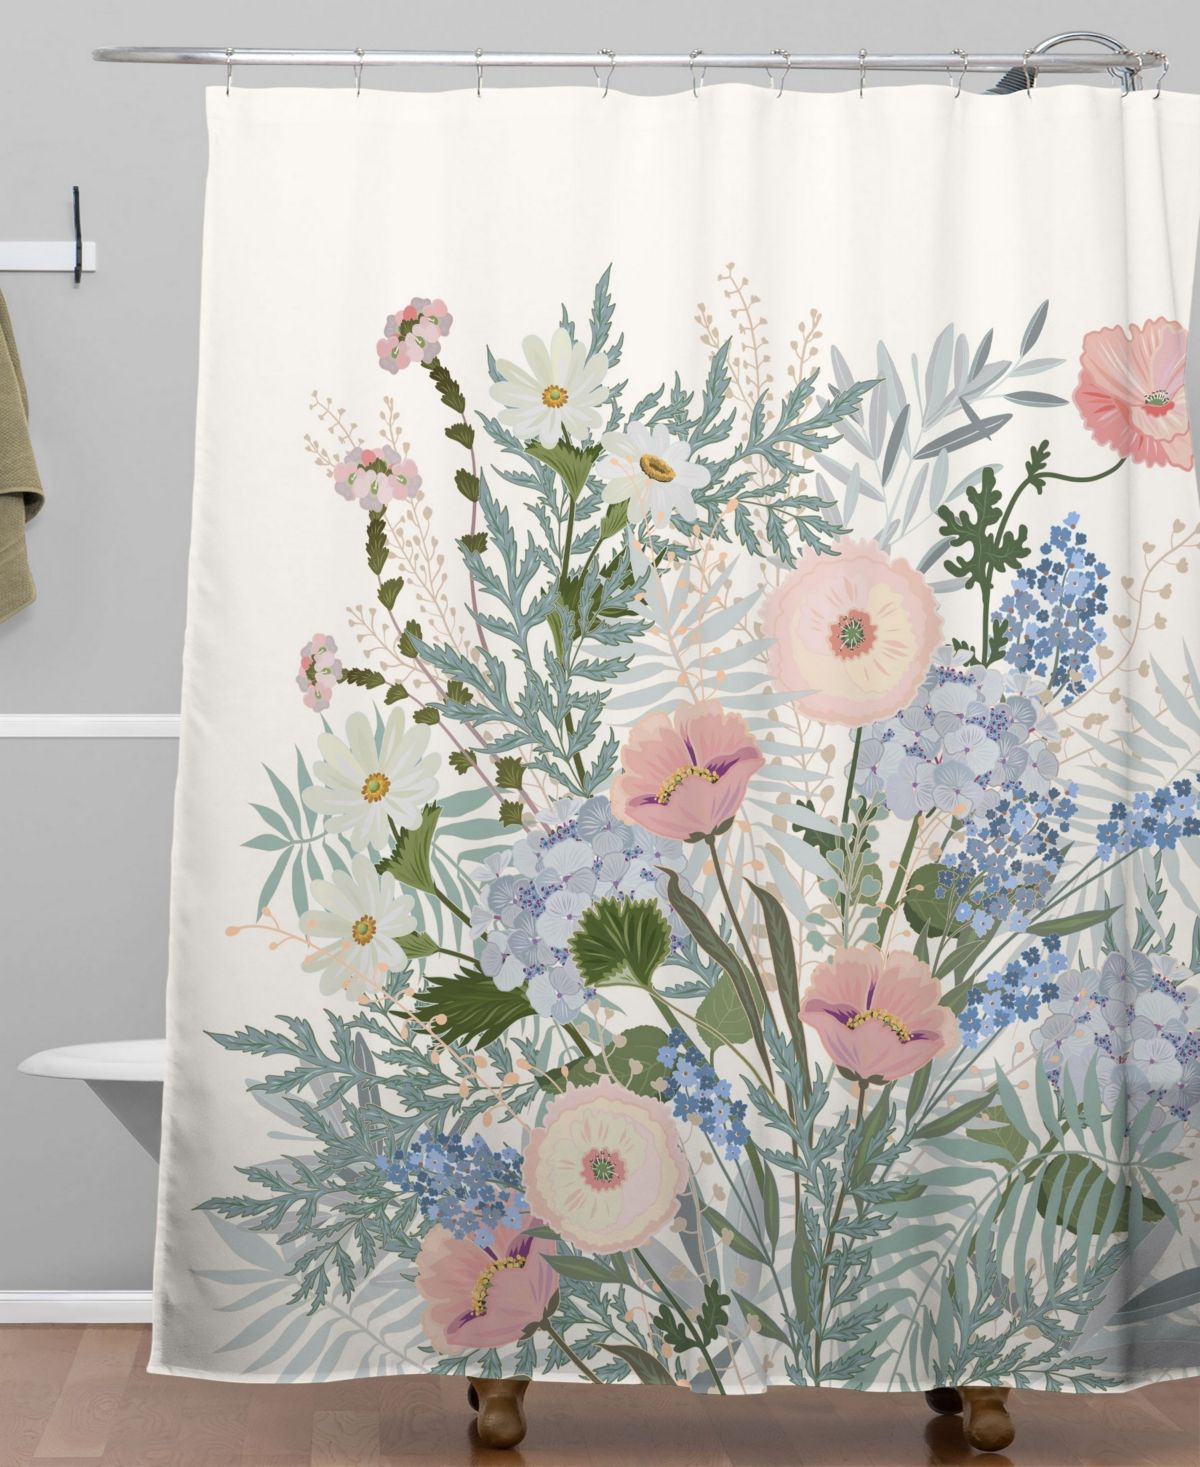 Deny Designs Iveta Abolina Camille Shower Curtain Reviews Shower Curtains Bed Bath Macy S Baby Clothes Shops Design Curtains